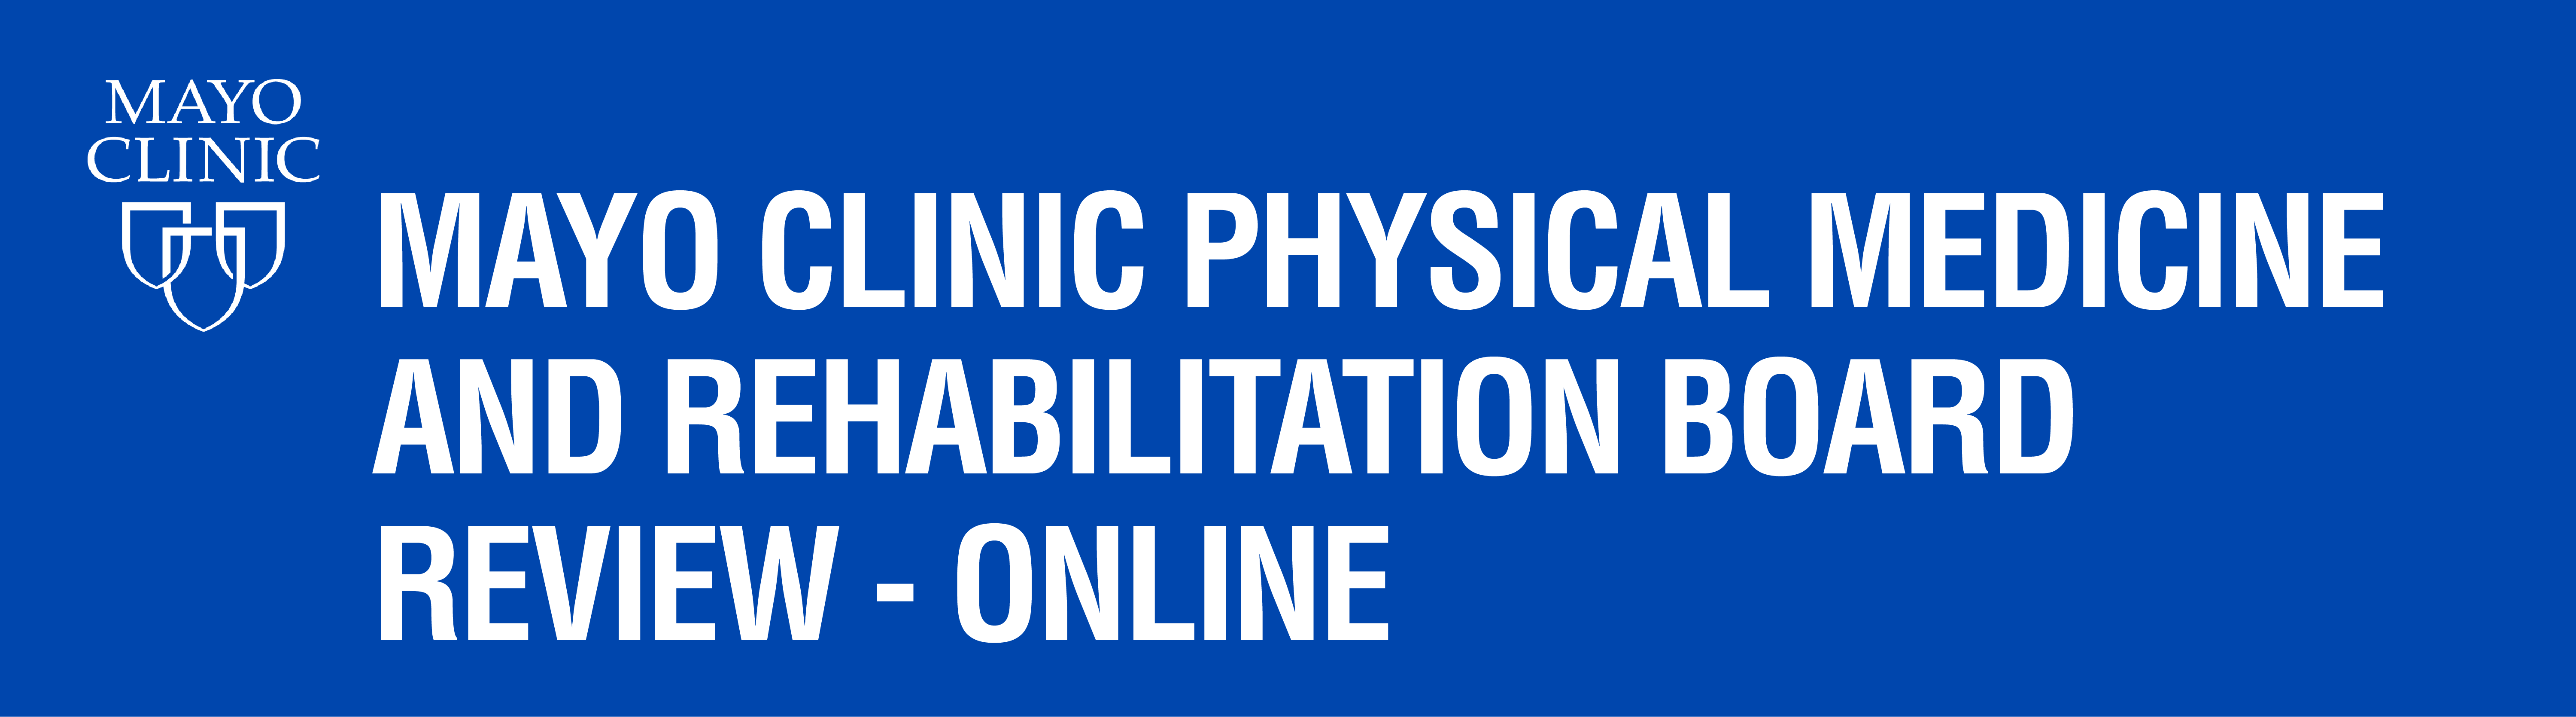 Mayo Clinic Physical Medicine and Rehabilitation Board Review - Online